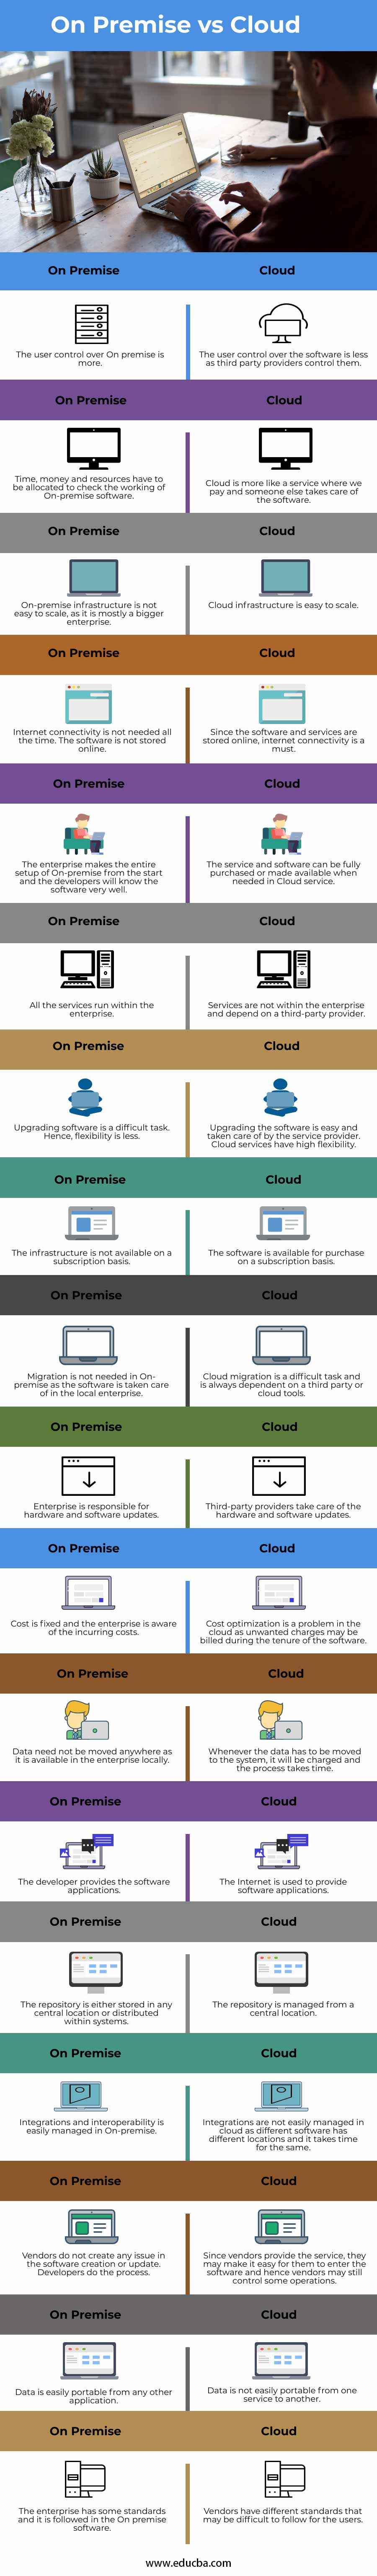 On Premise vs Cloud info